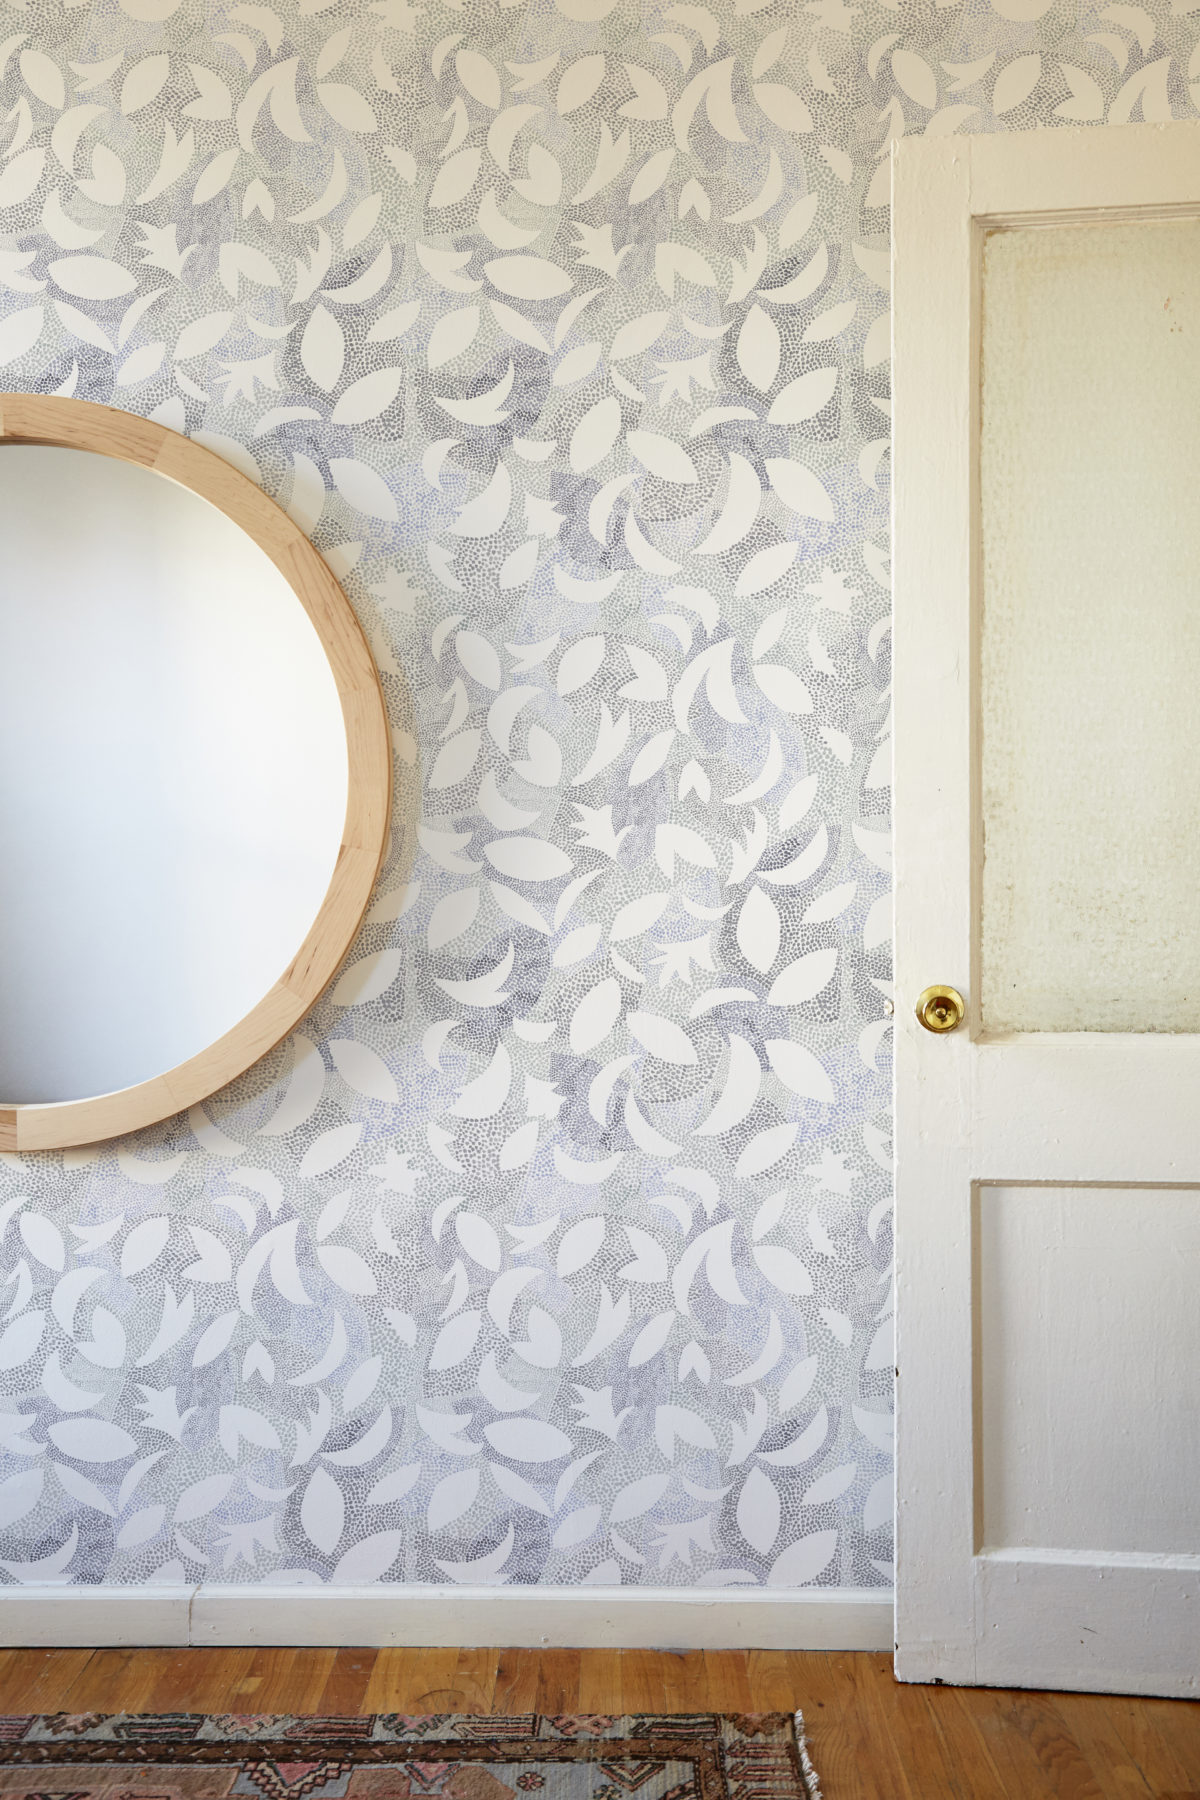 round mirror in an entryway with wallpaper